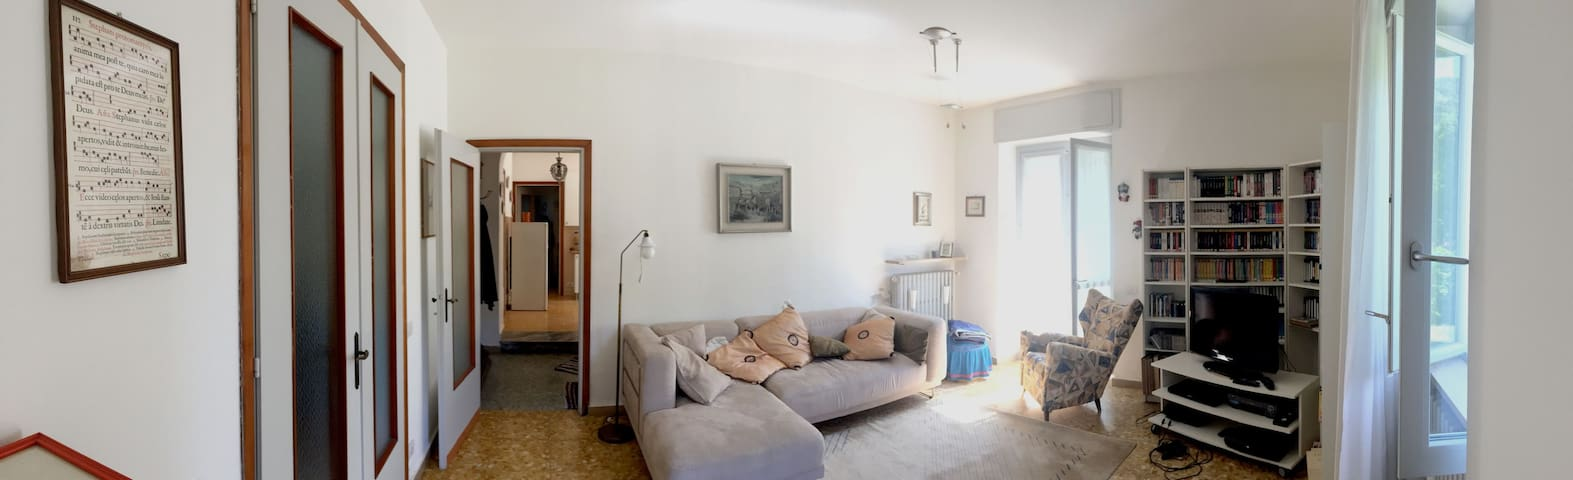 Villa with garden and every comfort - Pontida - Σπίτι